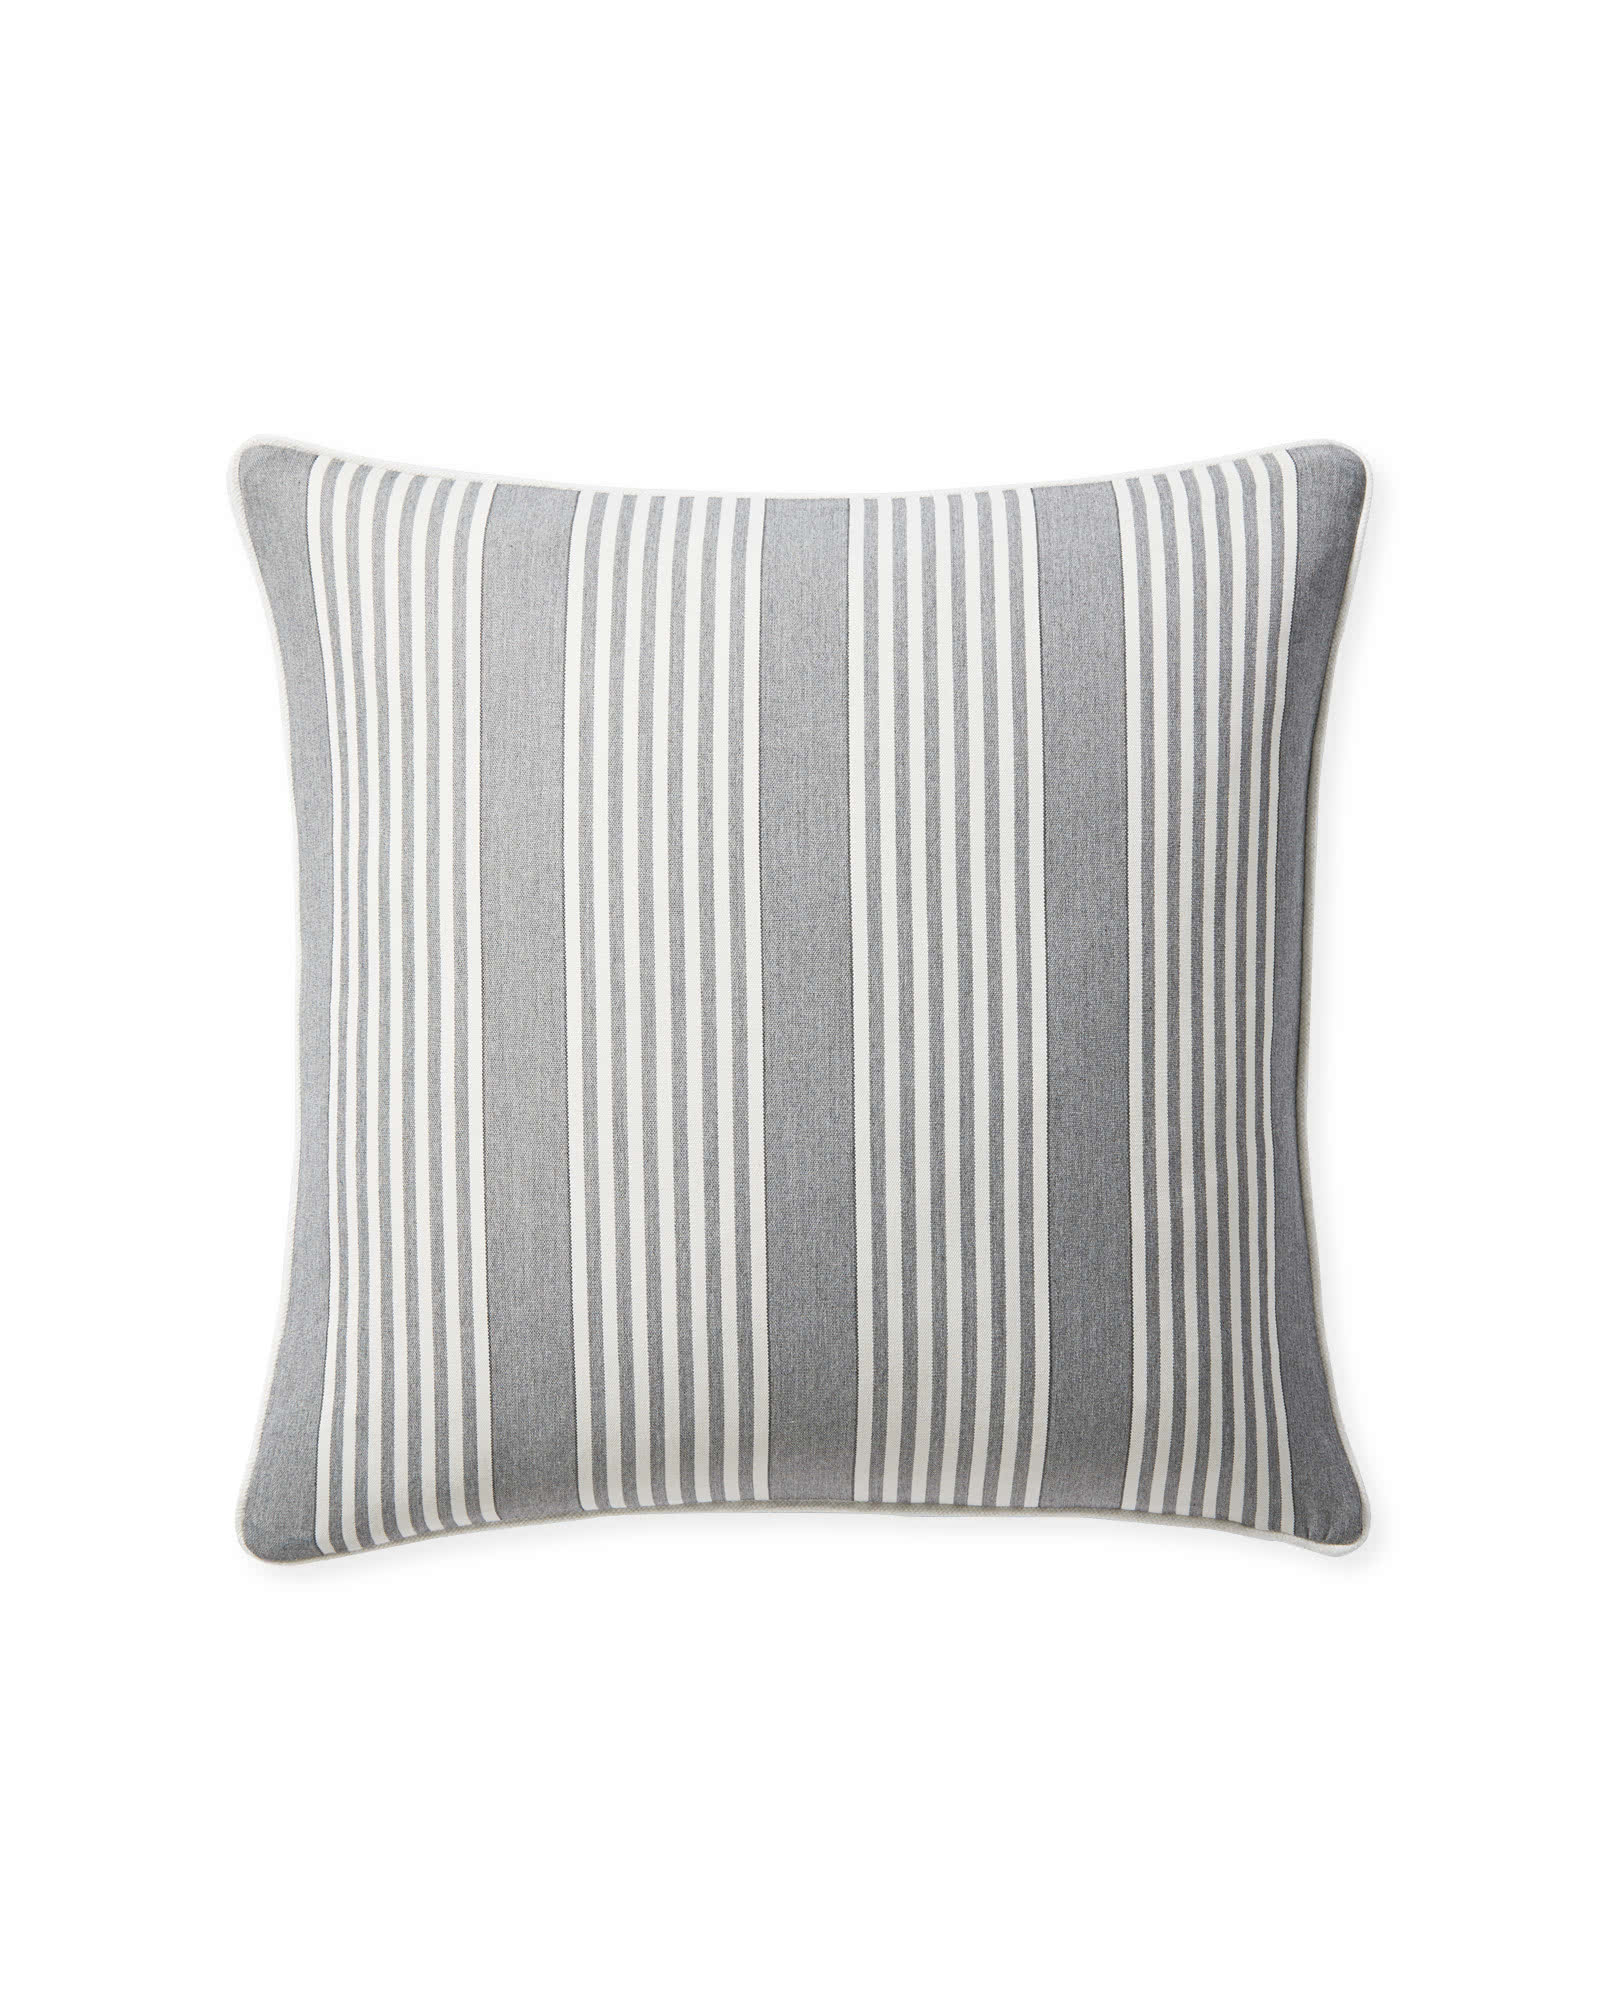 Perennials® Cabana Stripe Pillow Cover, Platinum